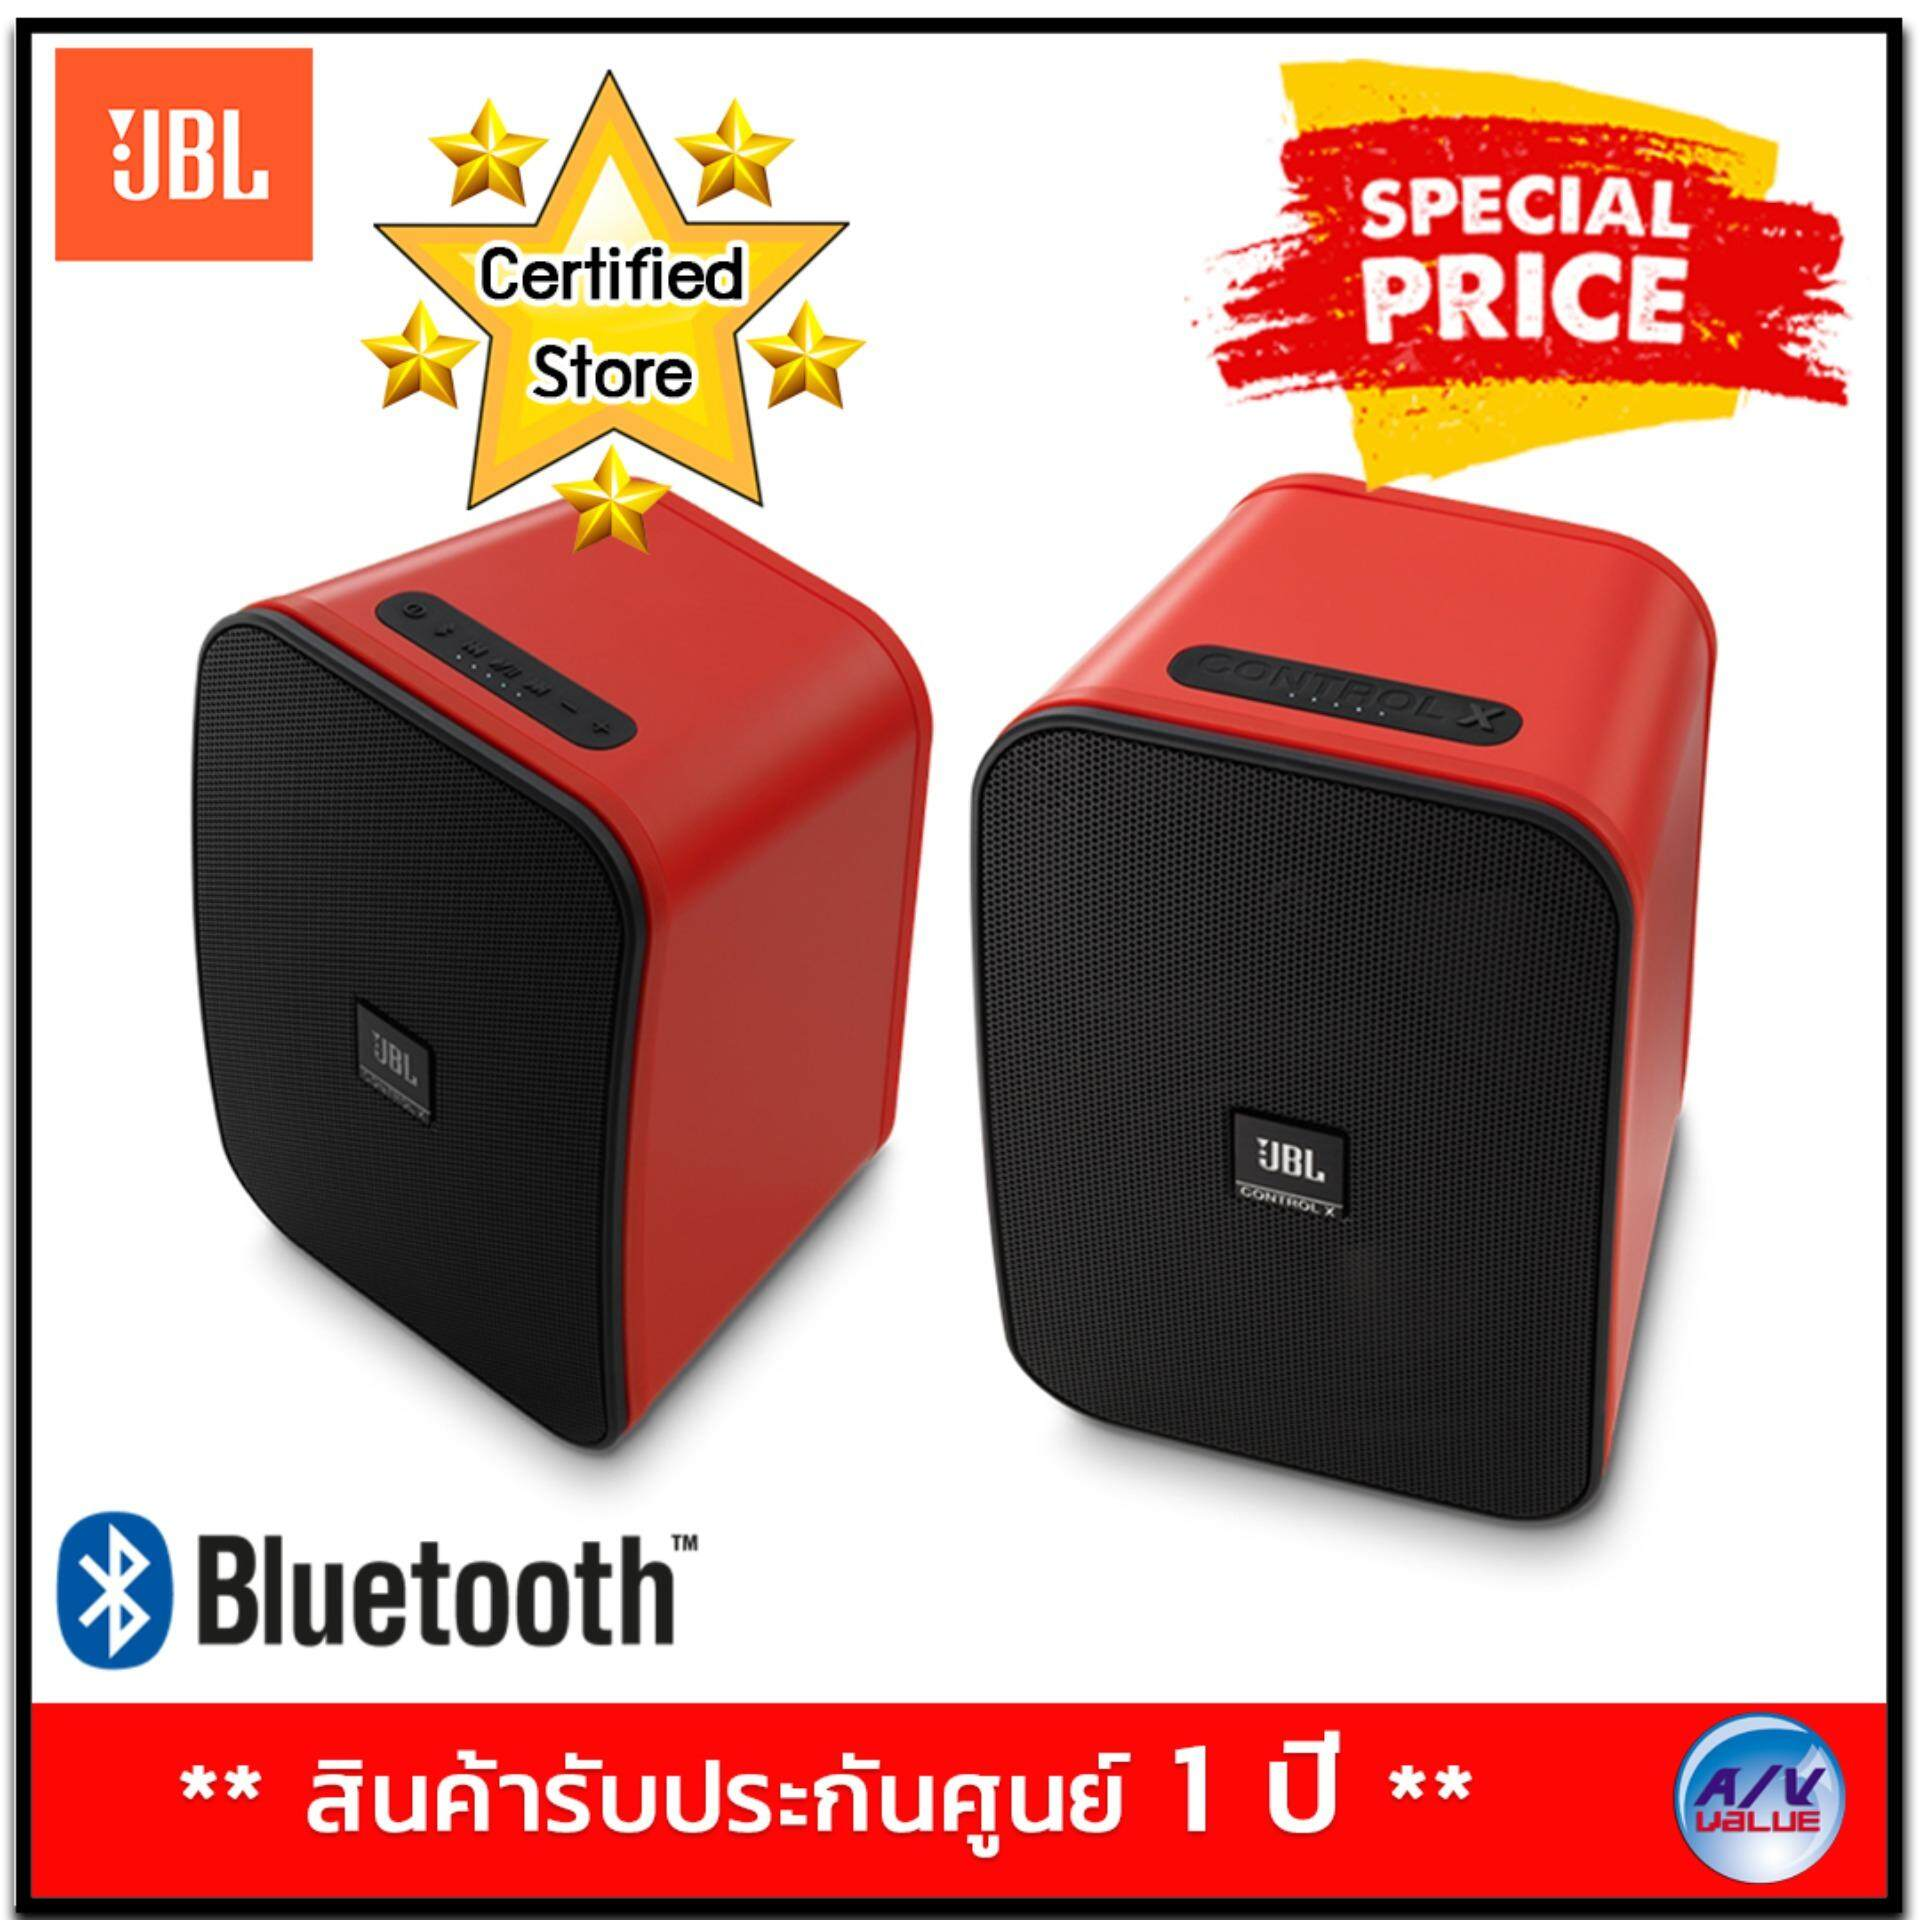 ระนอง JBL Control XT (Red) Wireless stereo Bluetooth® speakers **Voucher ลดเพิ่มพิเศษ